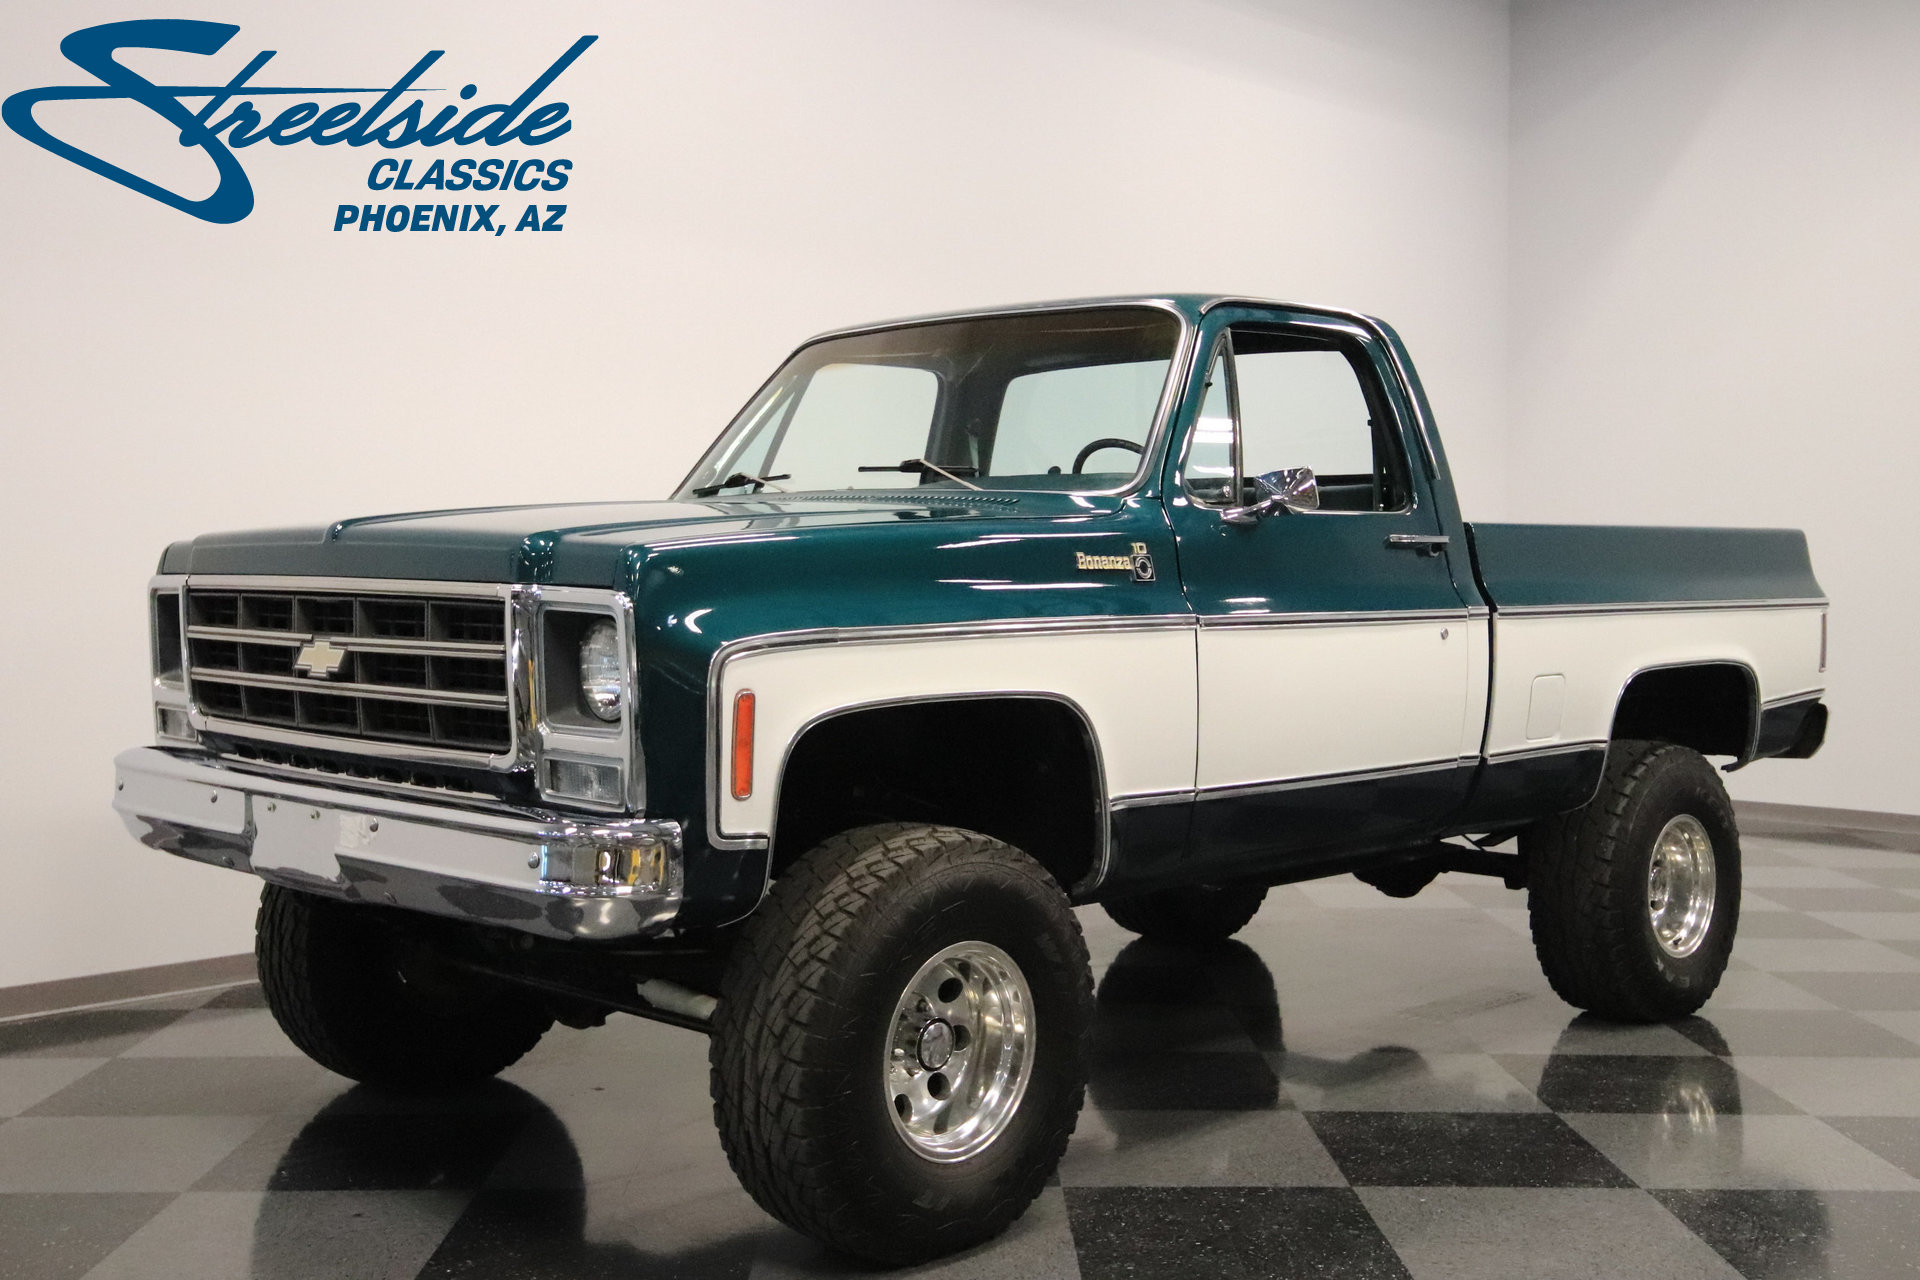 1979 chevrolet k 10 streetside classics the nation 39 s trusted classic car consignment dealer. Black Bedroom Furniture Sets. Home Design Ideas